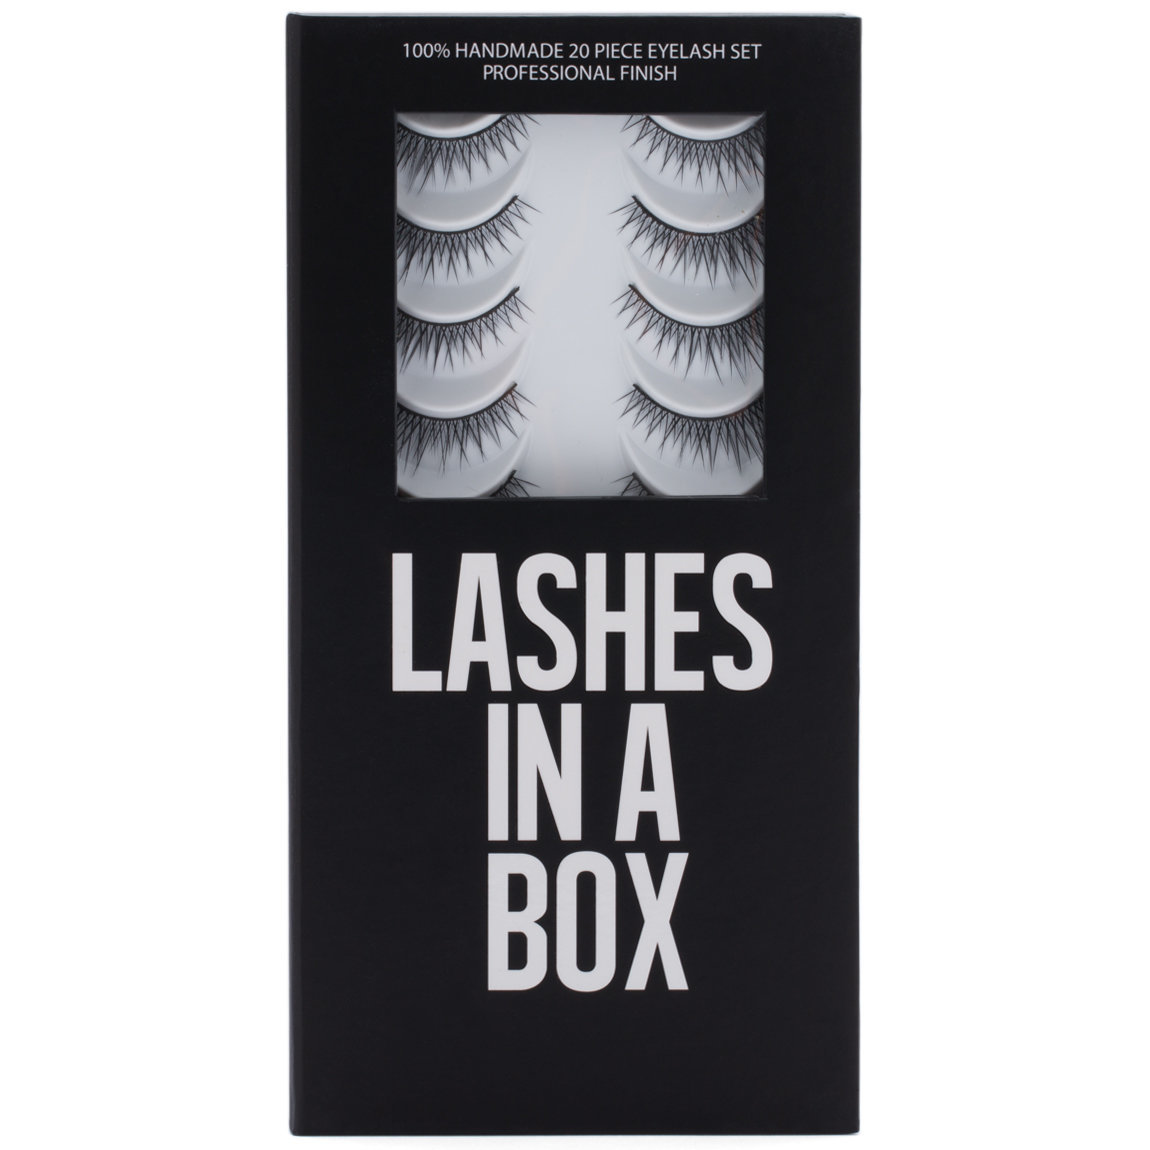 LASHES IN A BOX N°10 product swatch.